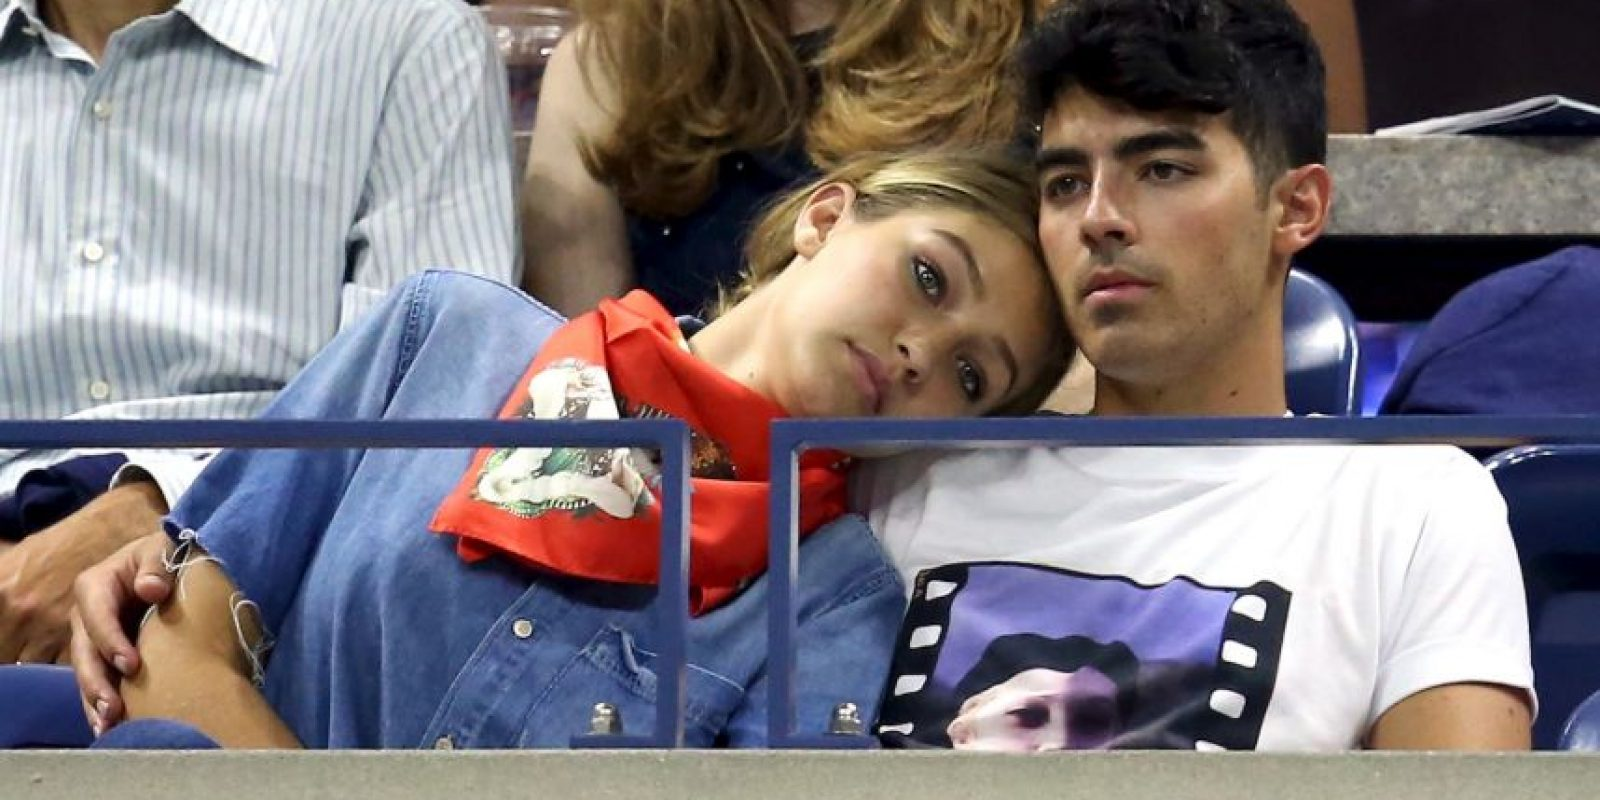 ¿Qué pensará Joe Jonas de esto? Foto: Getty Images